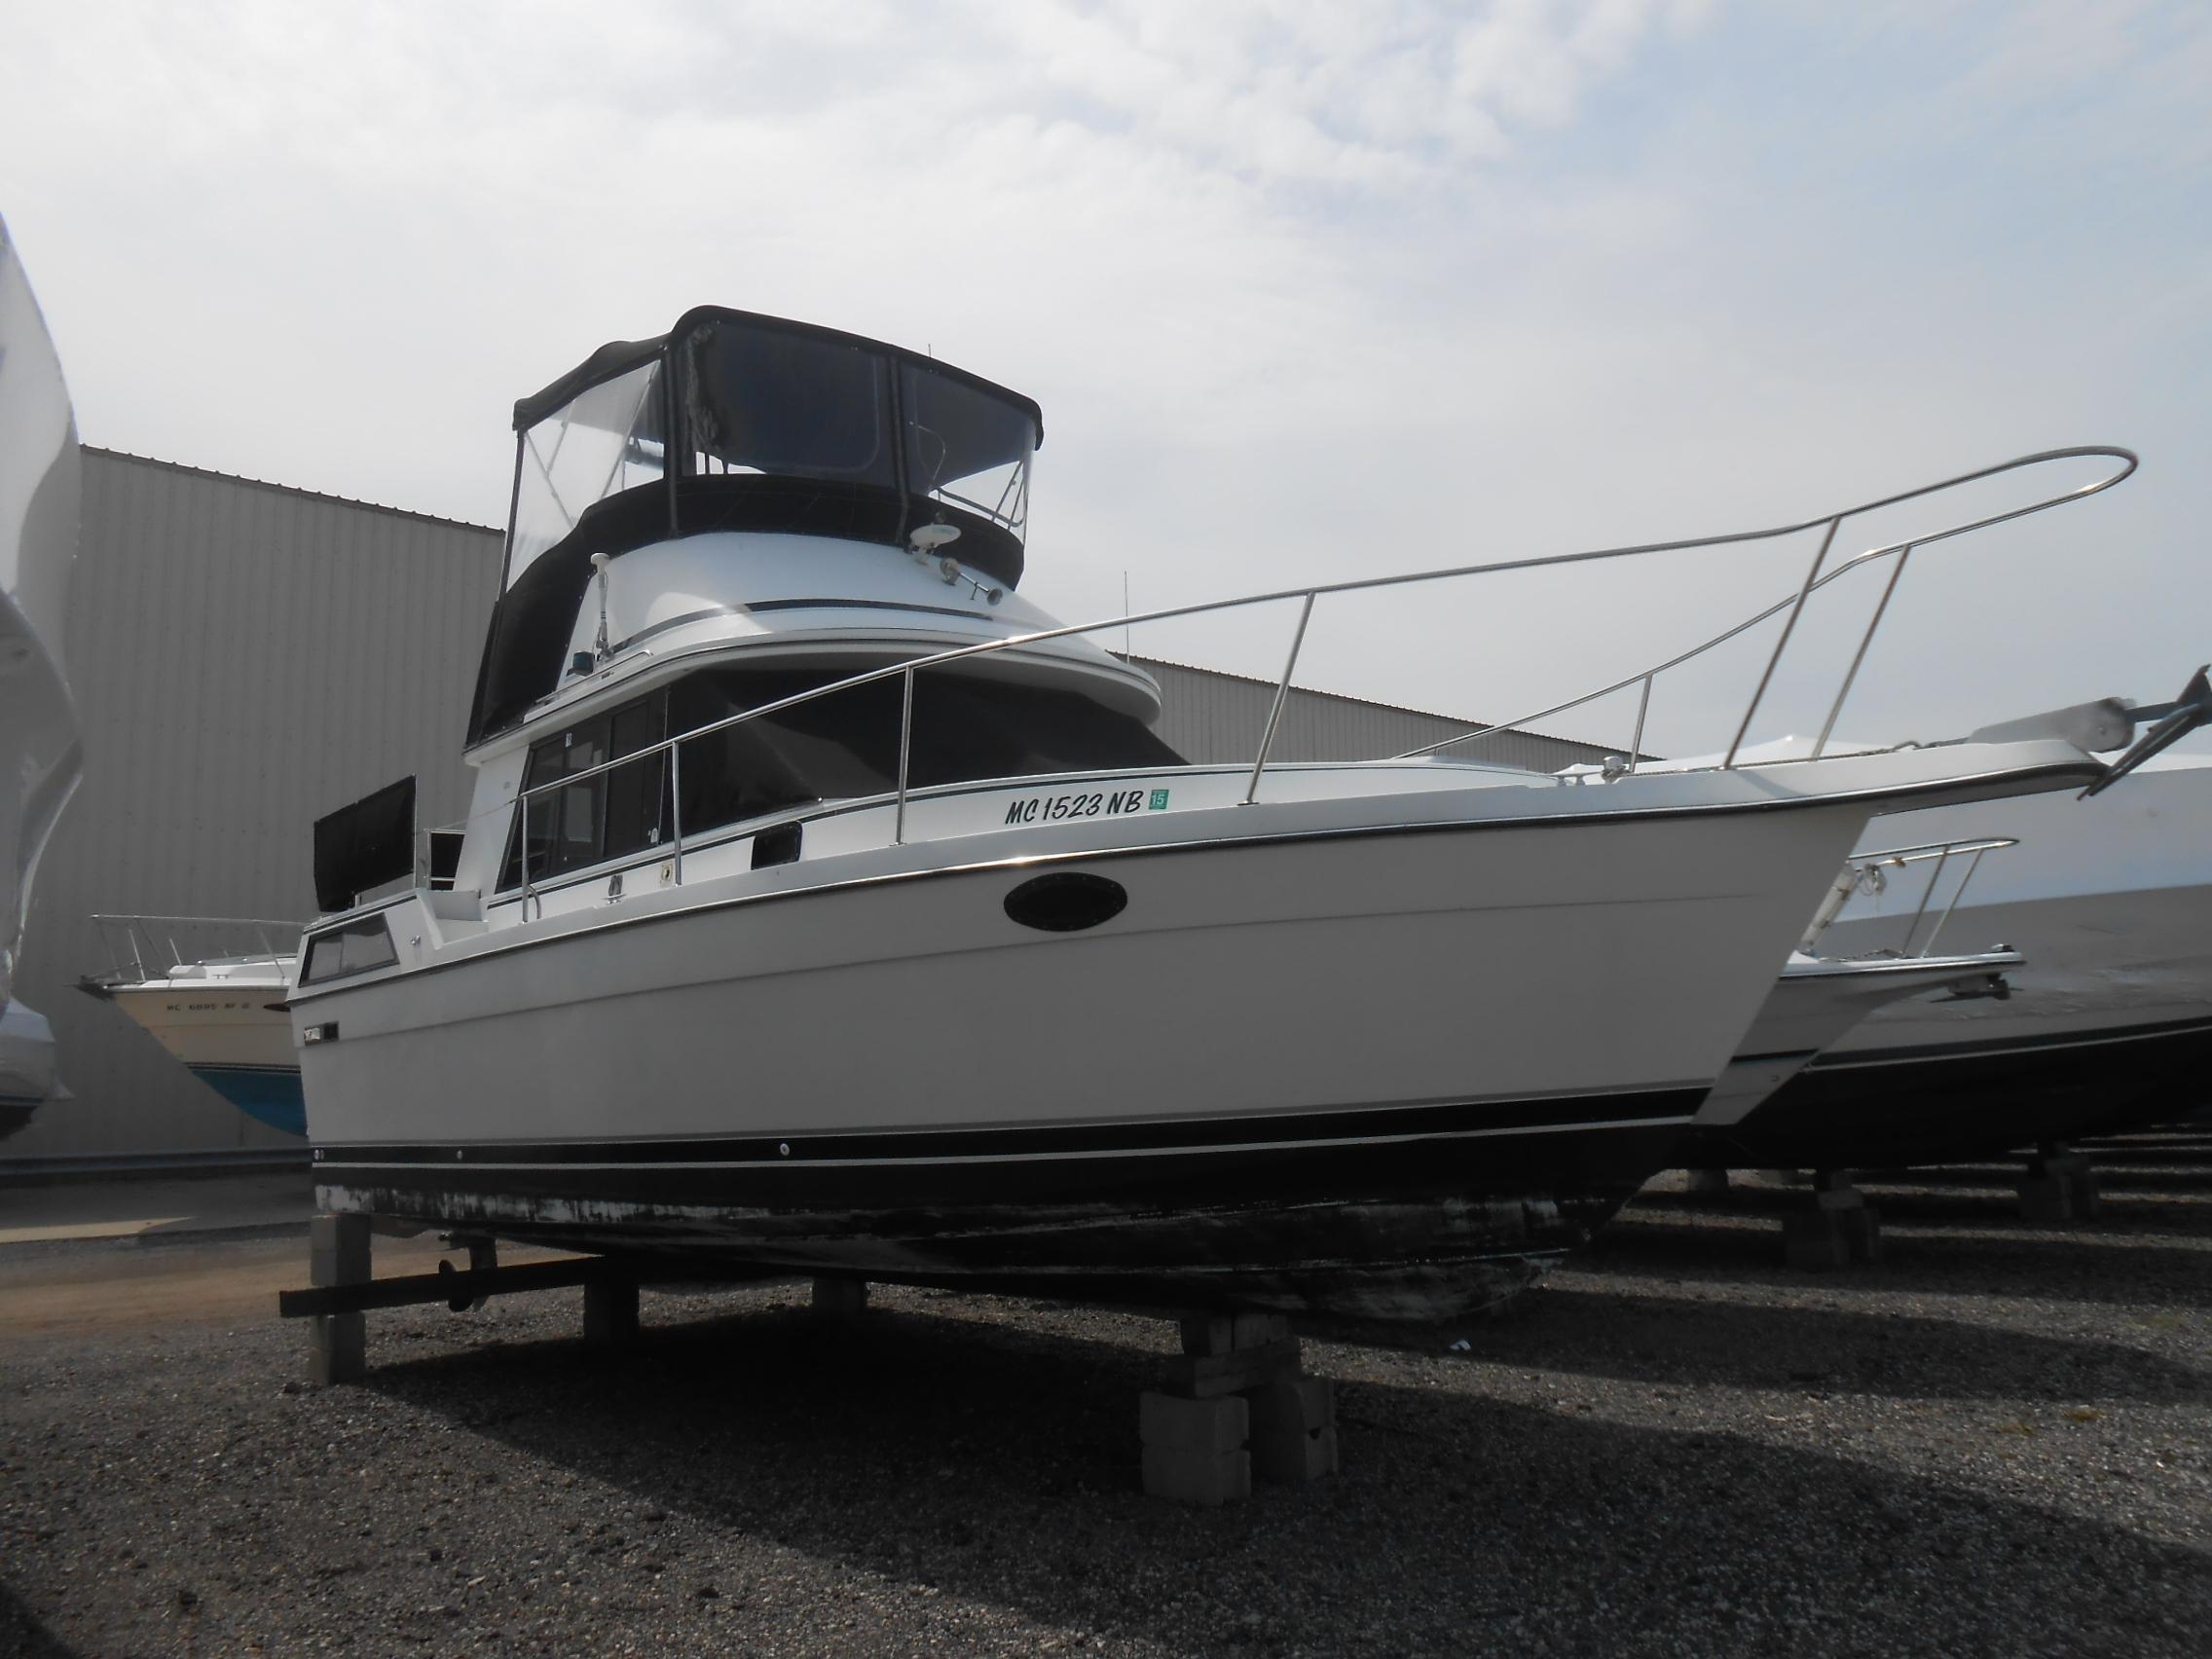 Cooper Yachts Prowler 9 M, Harrison Township